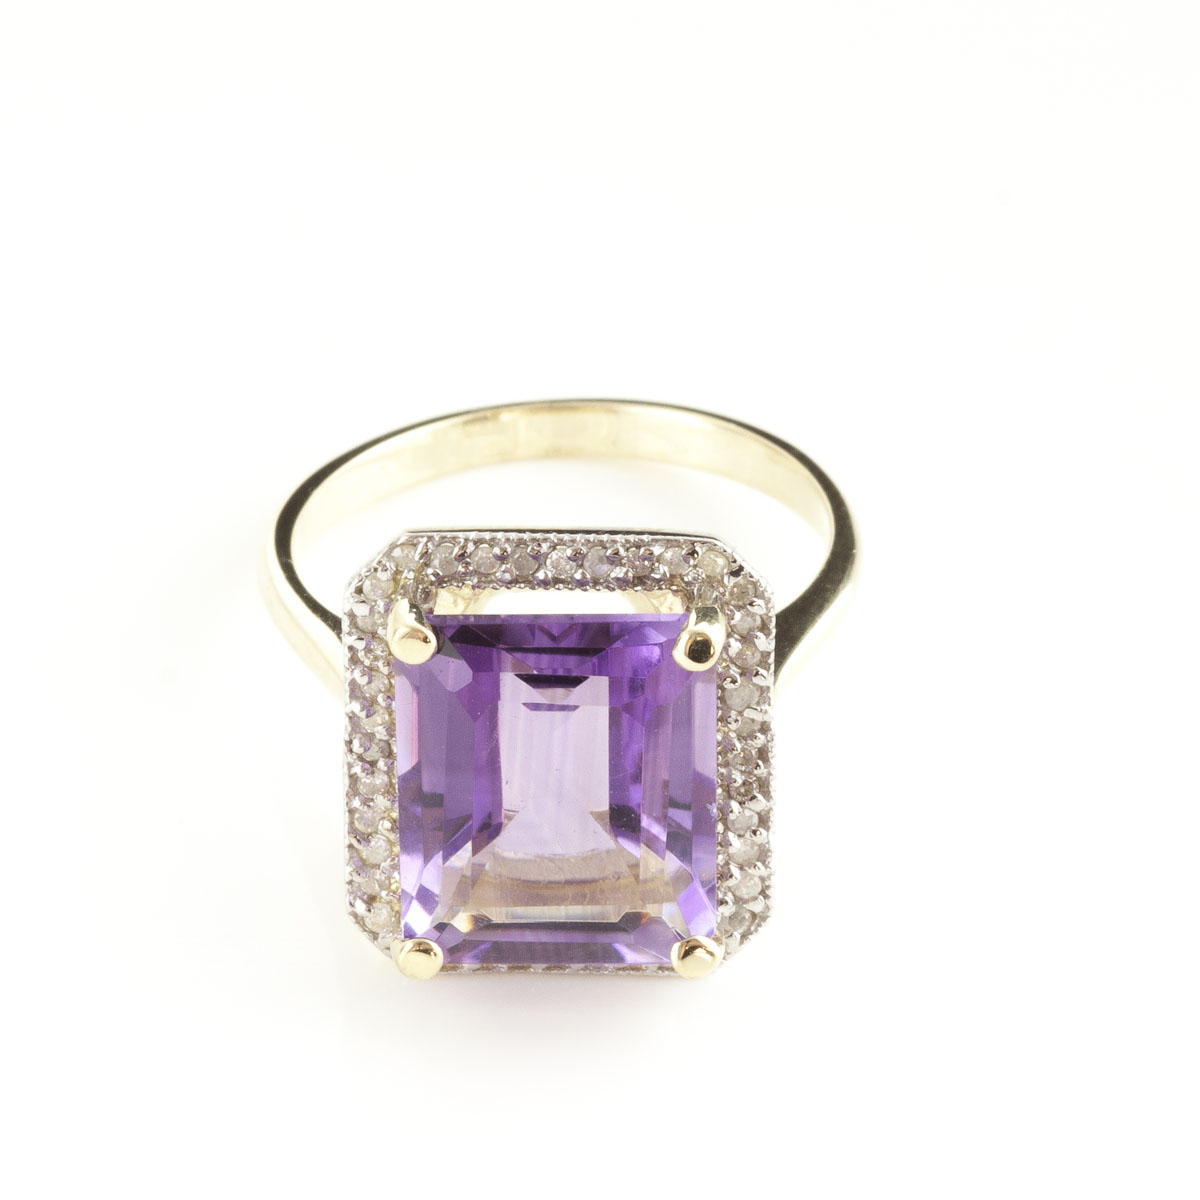 Amethyst Halo Ring 5.8 ctw in 18ct Gold